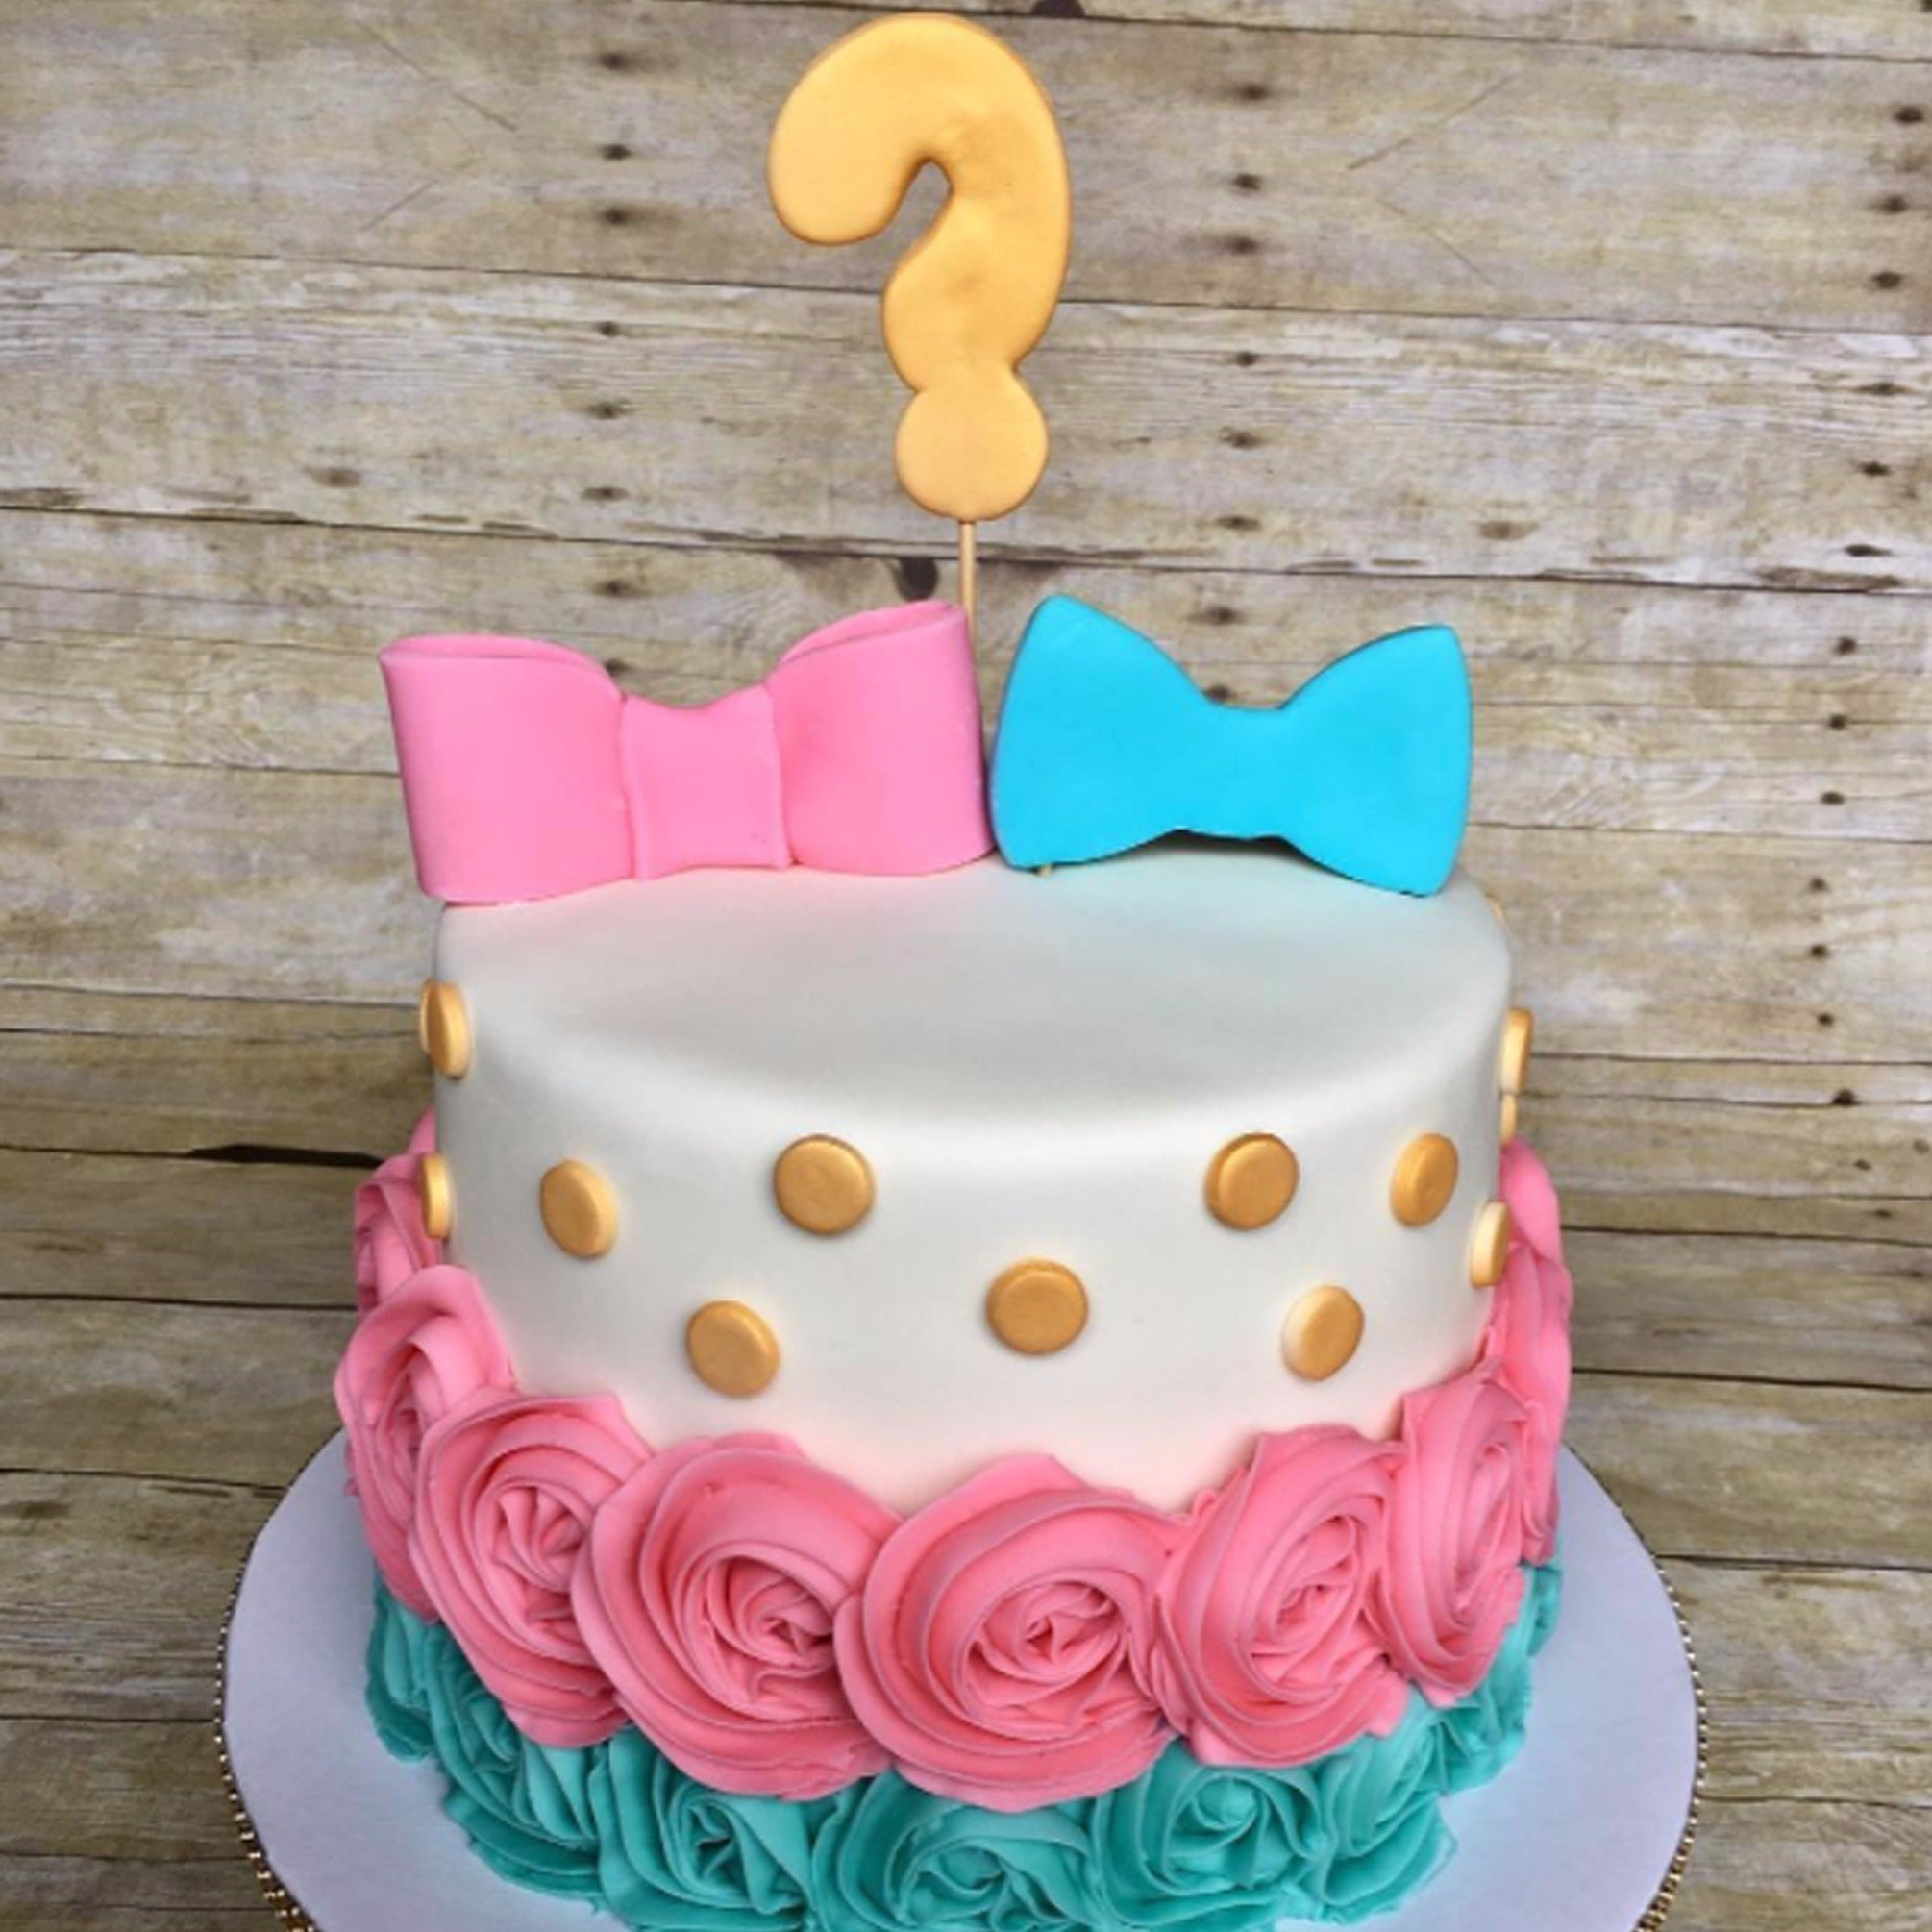 10 Beautiful Baby Gender Reveal Cake Ideas gender reveal party cakes popsugar moms 1 2020